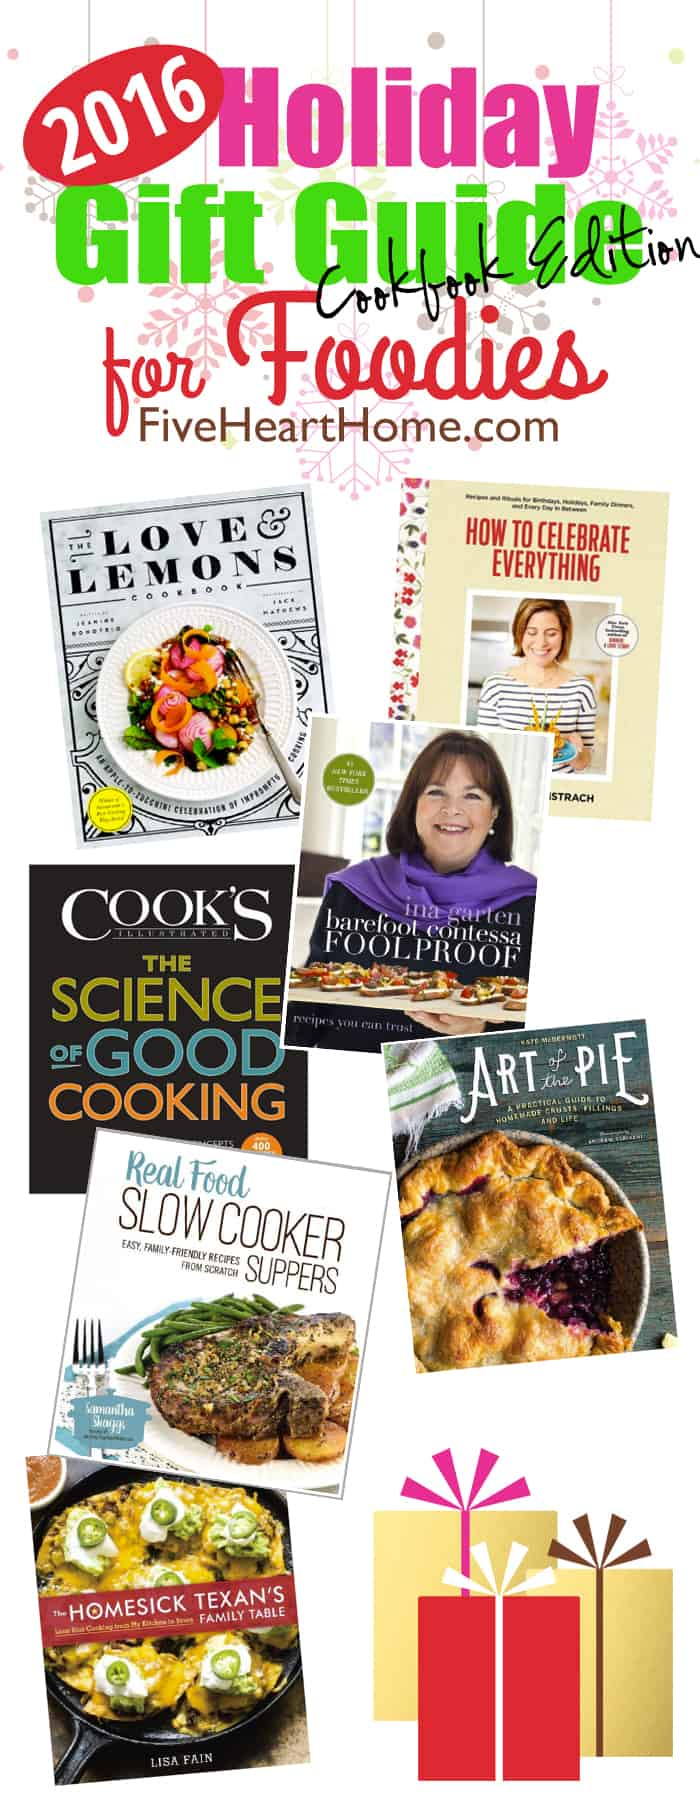 Best Cookbooks for Gifts! ~ 2016 Holiday Gift Guide for Foodies | FiveHeartHome.com